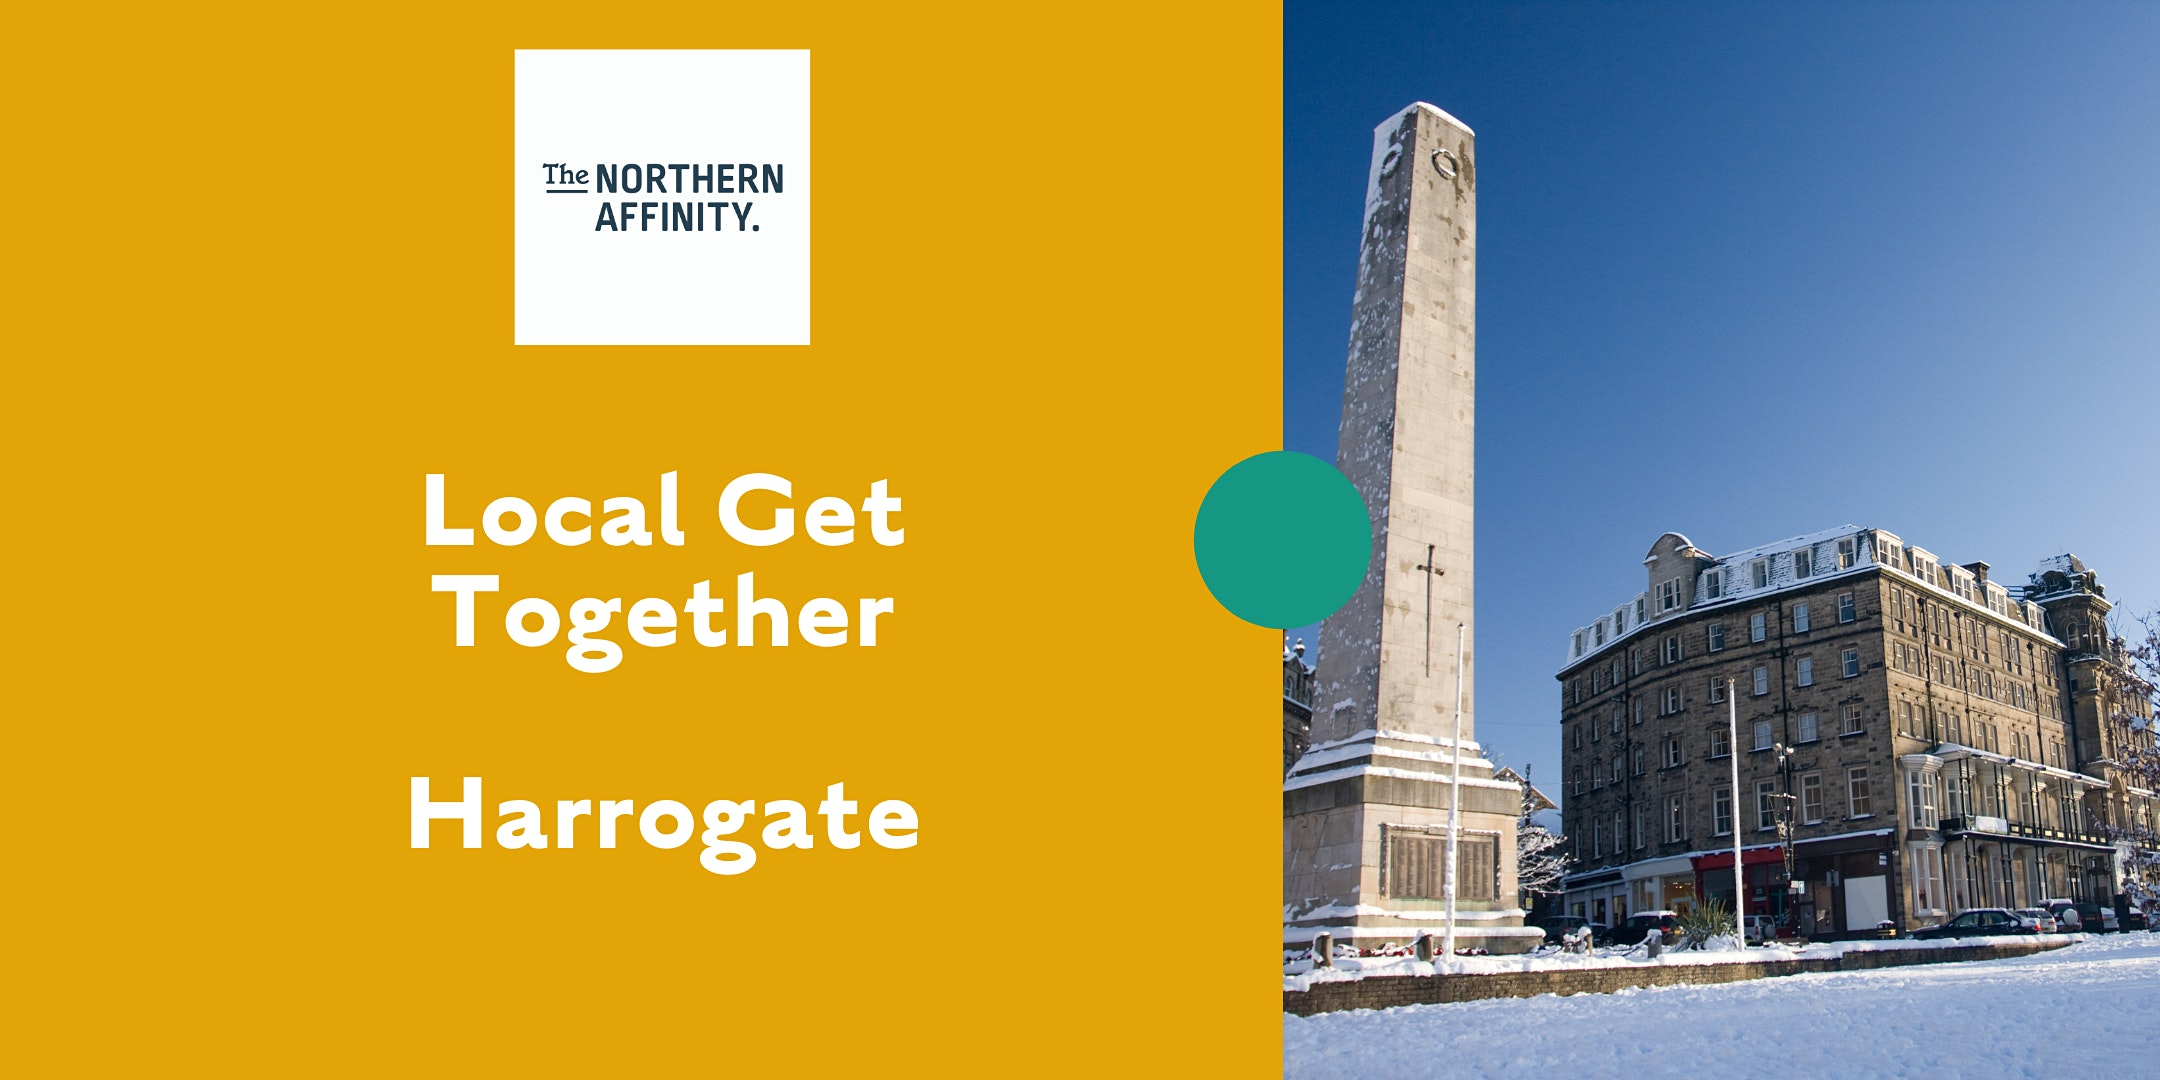 The Northern Affinity Local Get Together – Harrogate